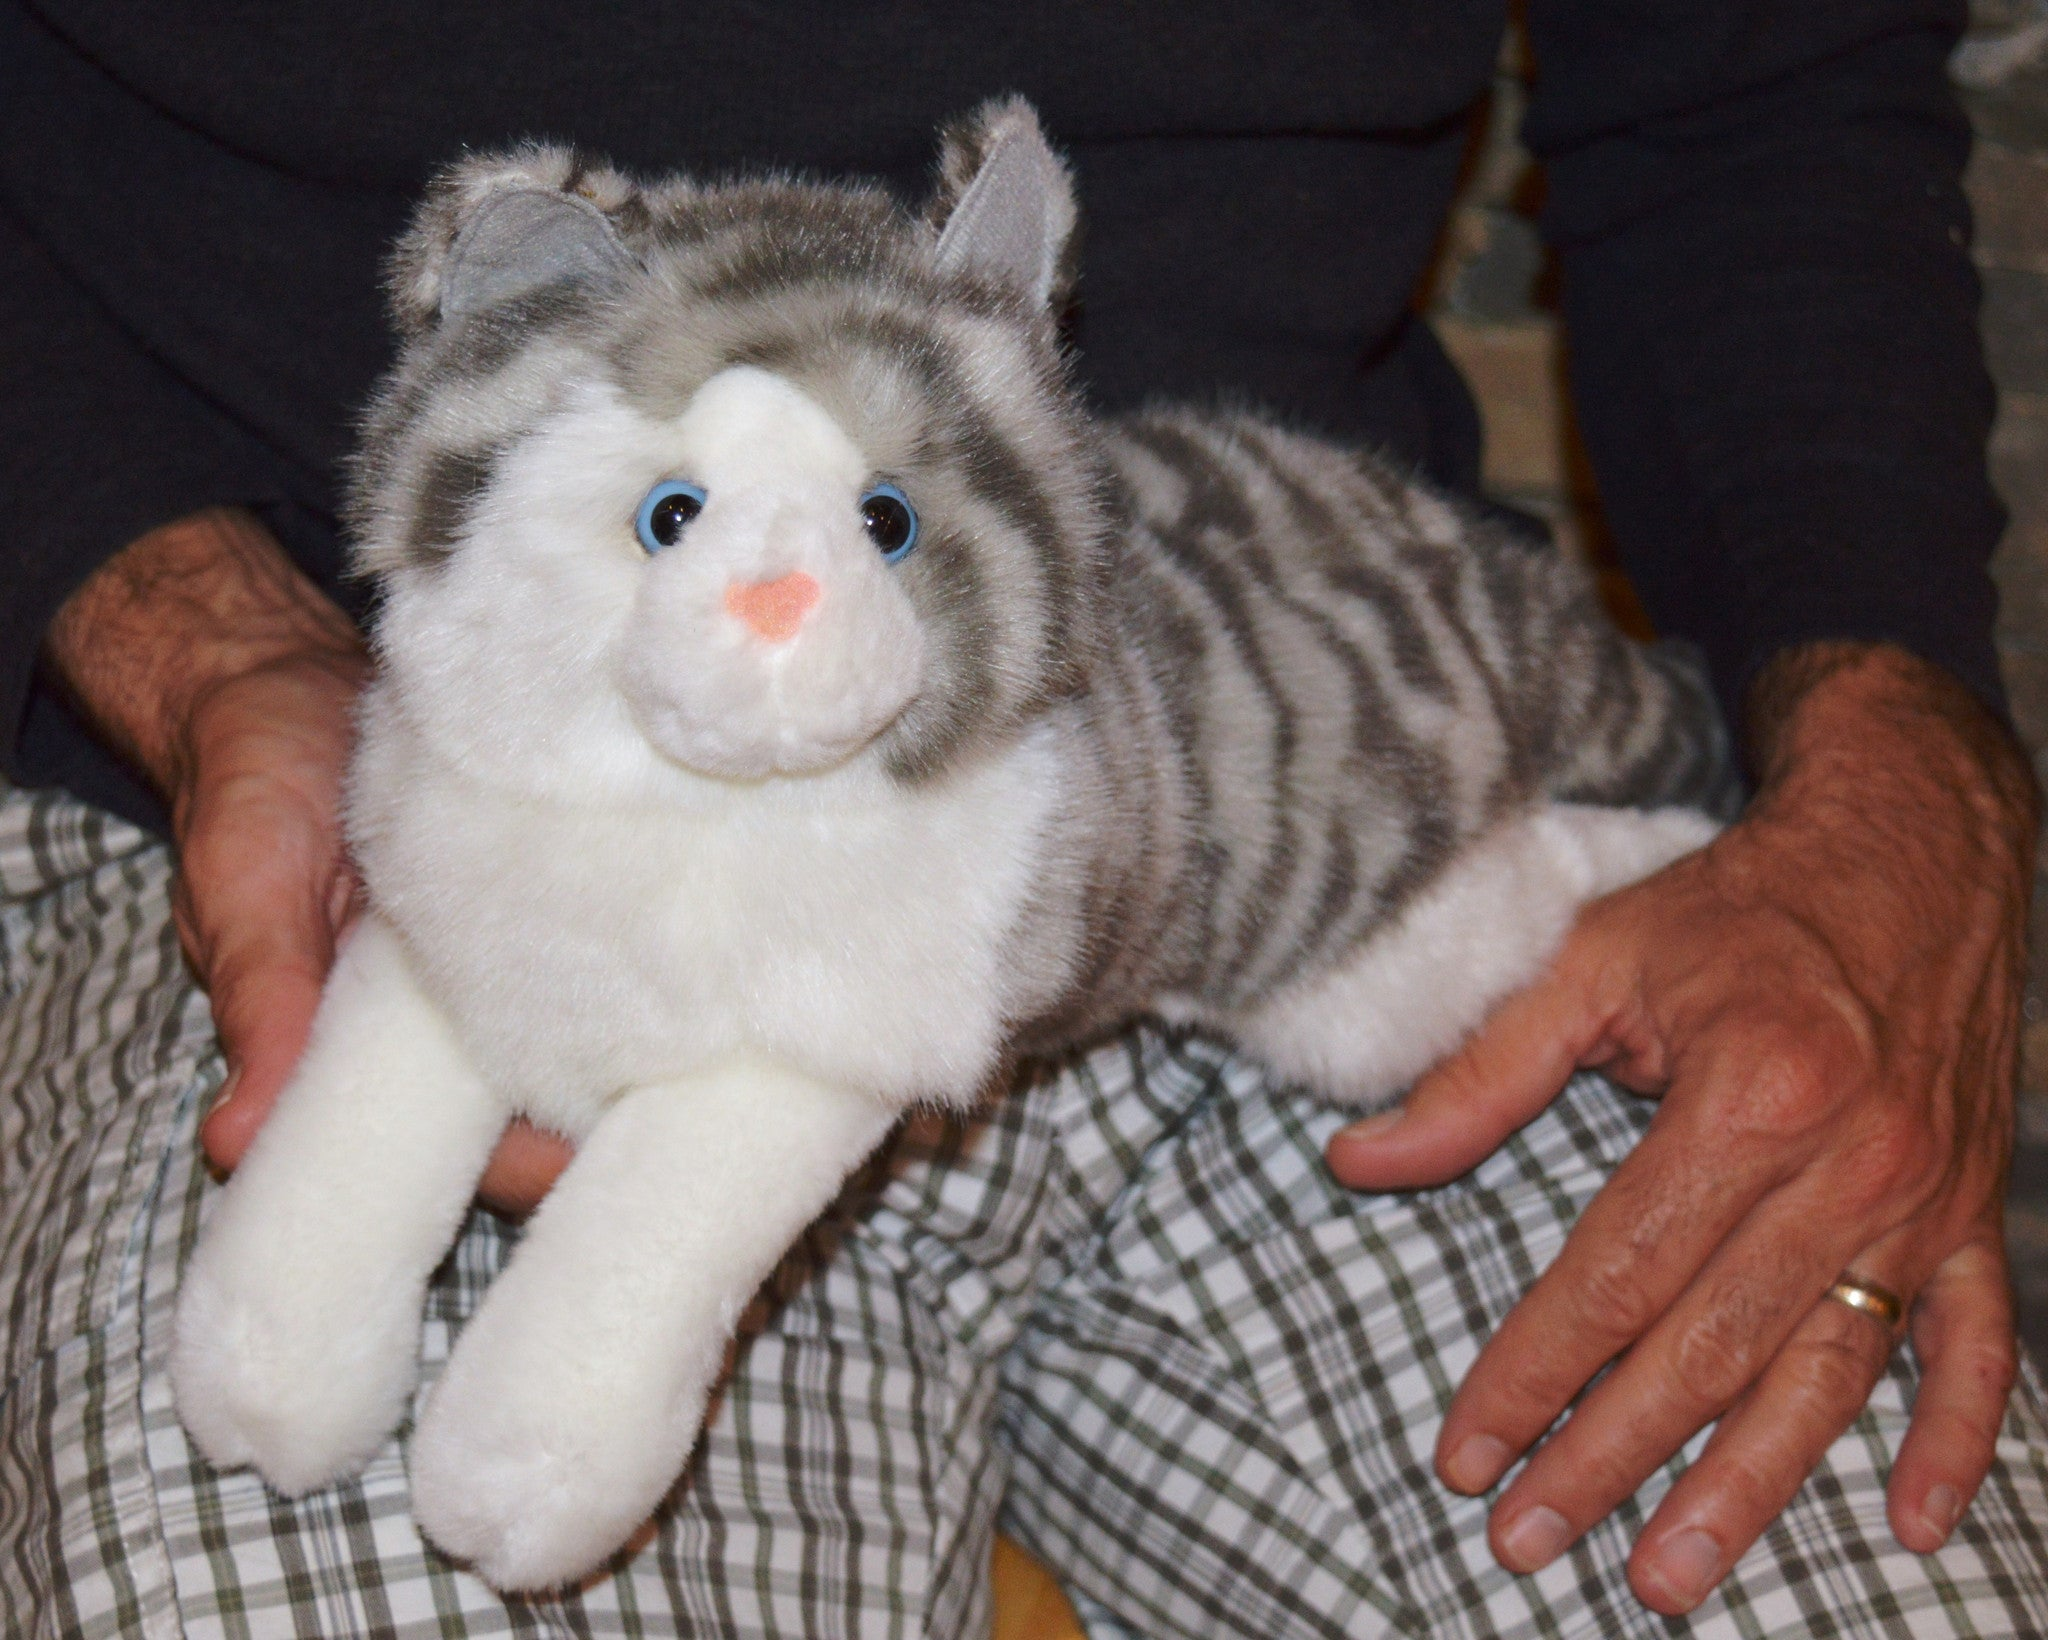 Tiger Striped Cat Stuffed Toy For Seniors And People With